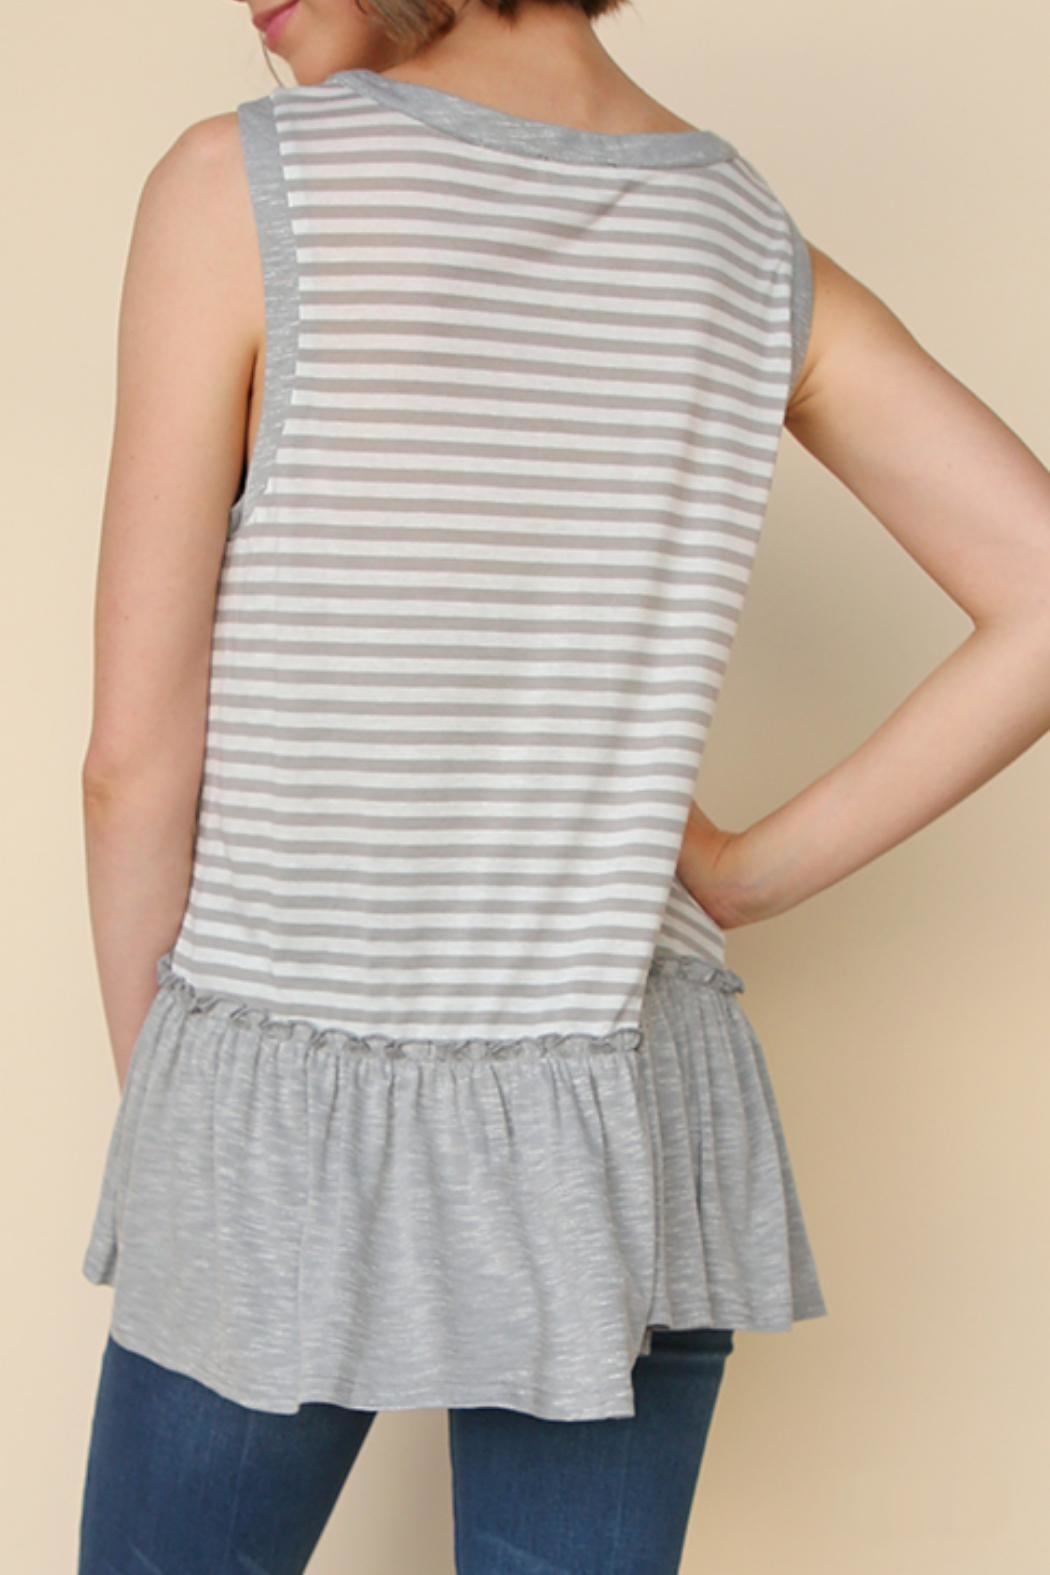 Umgee USA Sleeveless Striped Top - Front Full Image